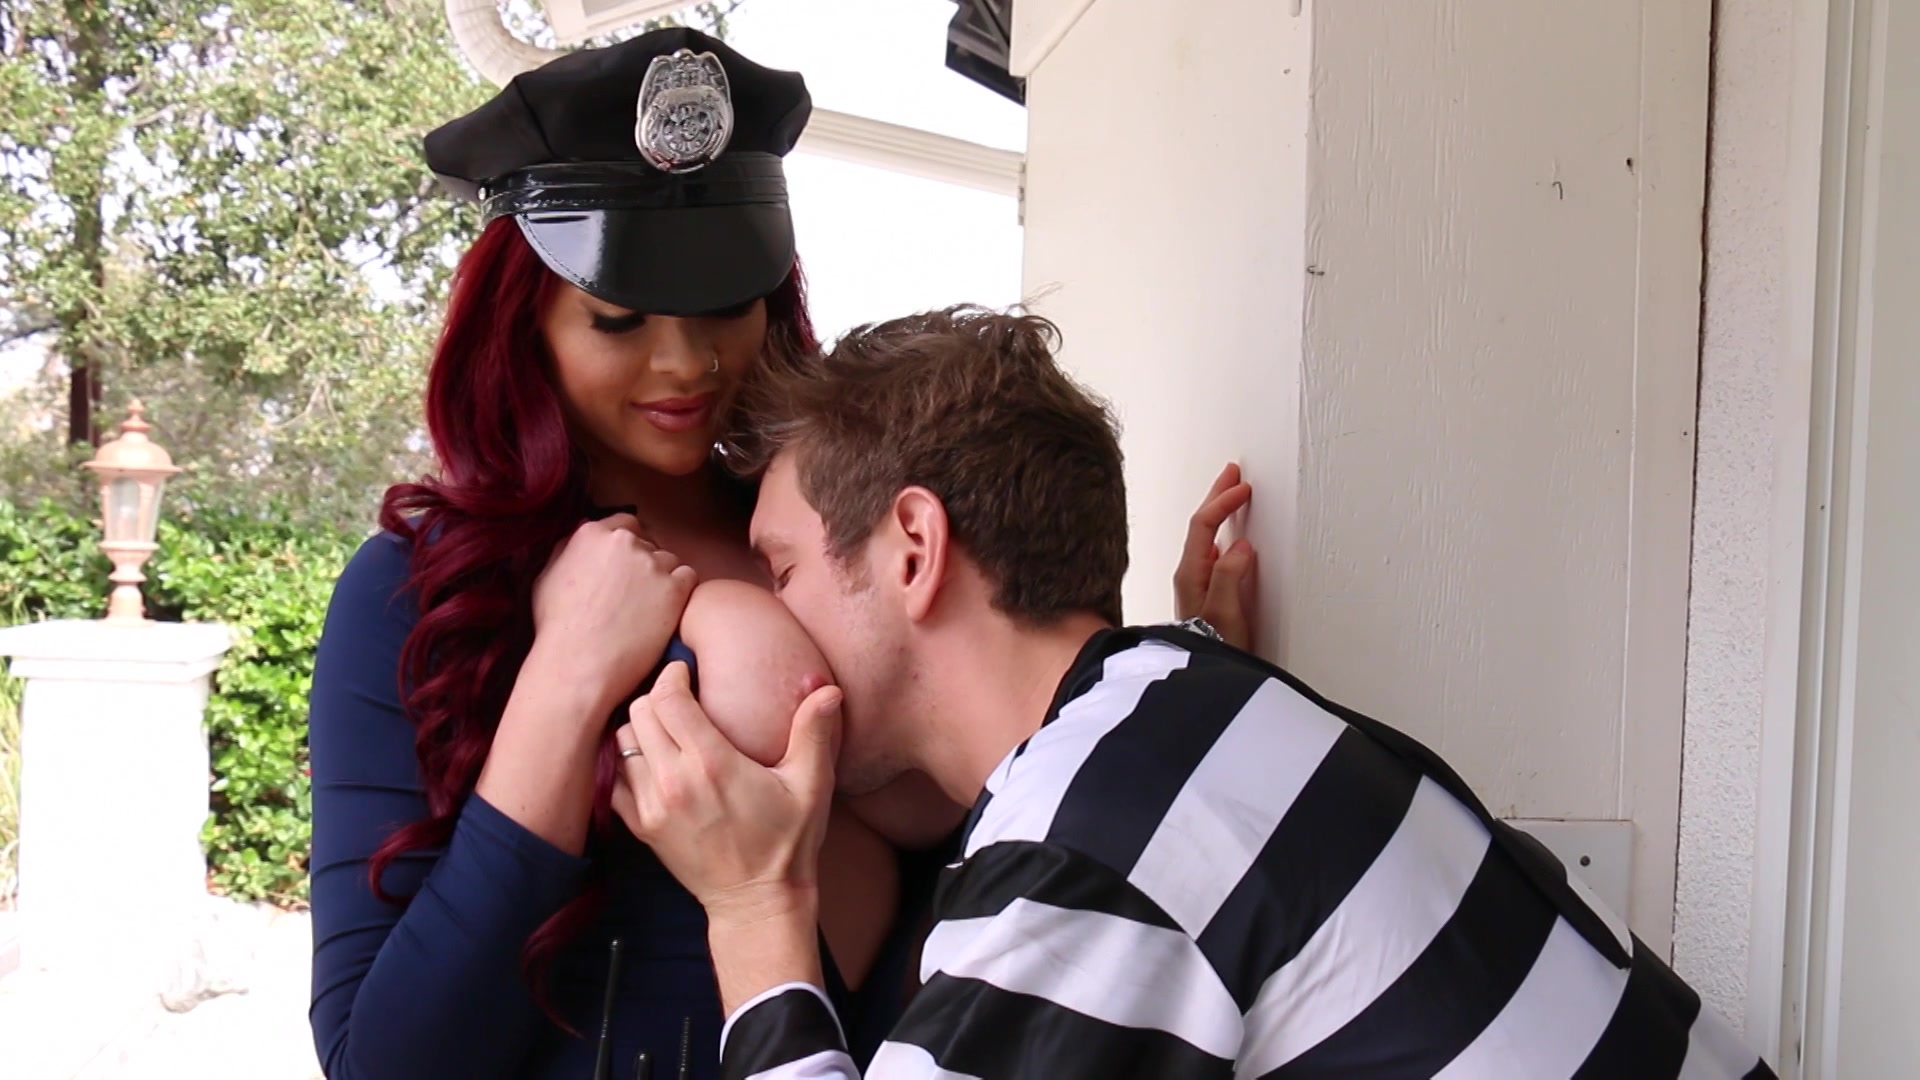 Busty Cops 2 2006 - Part 1 - XVIDEOSCOM